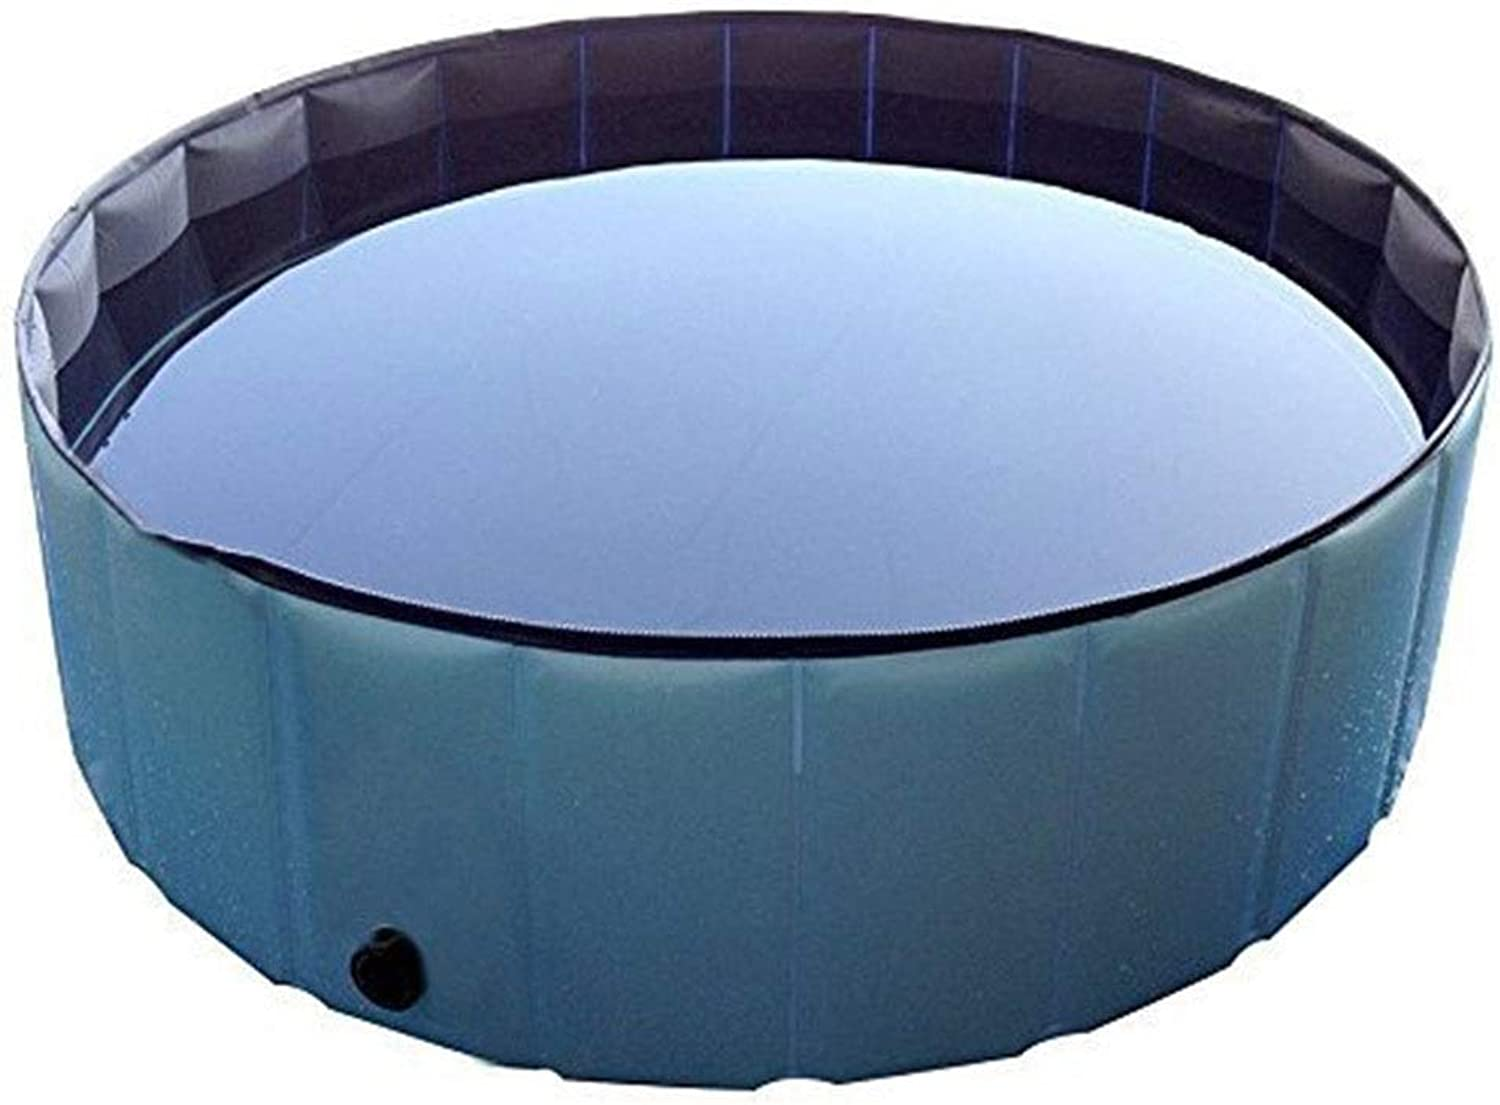 Foldable Dog Bath Collapsible Swimming Pool Round Heavy Duty Outdoor ...